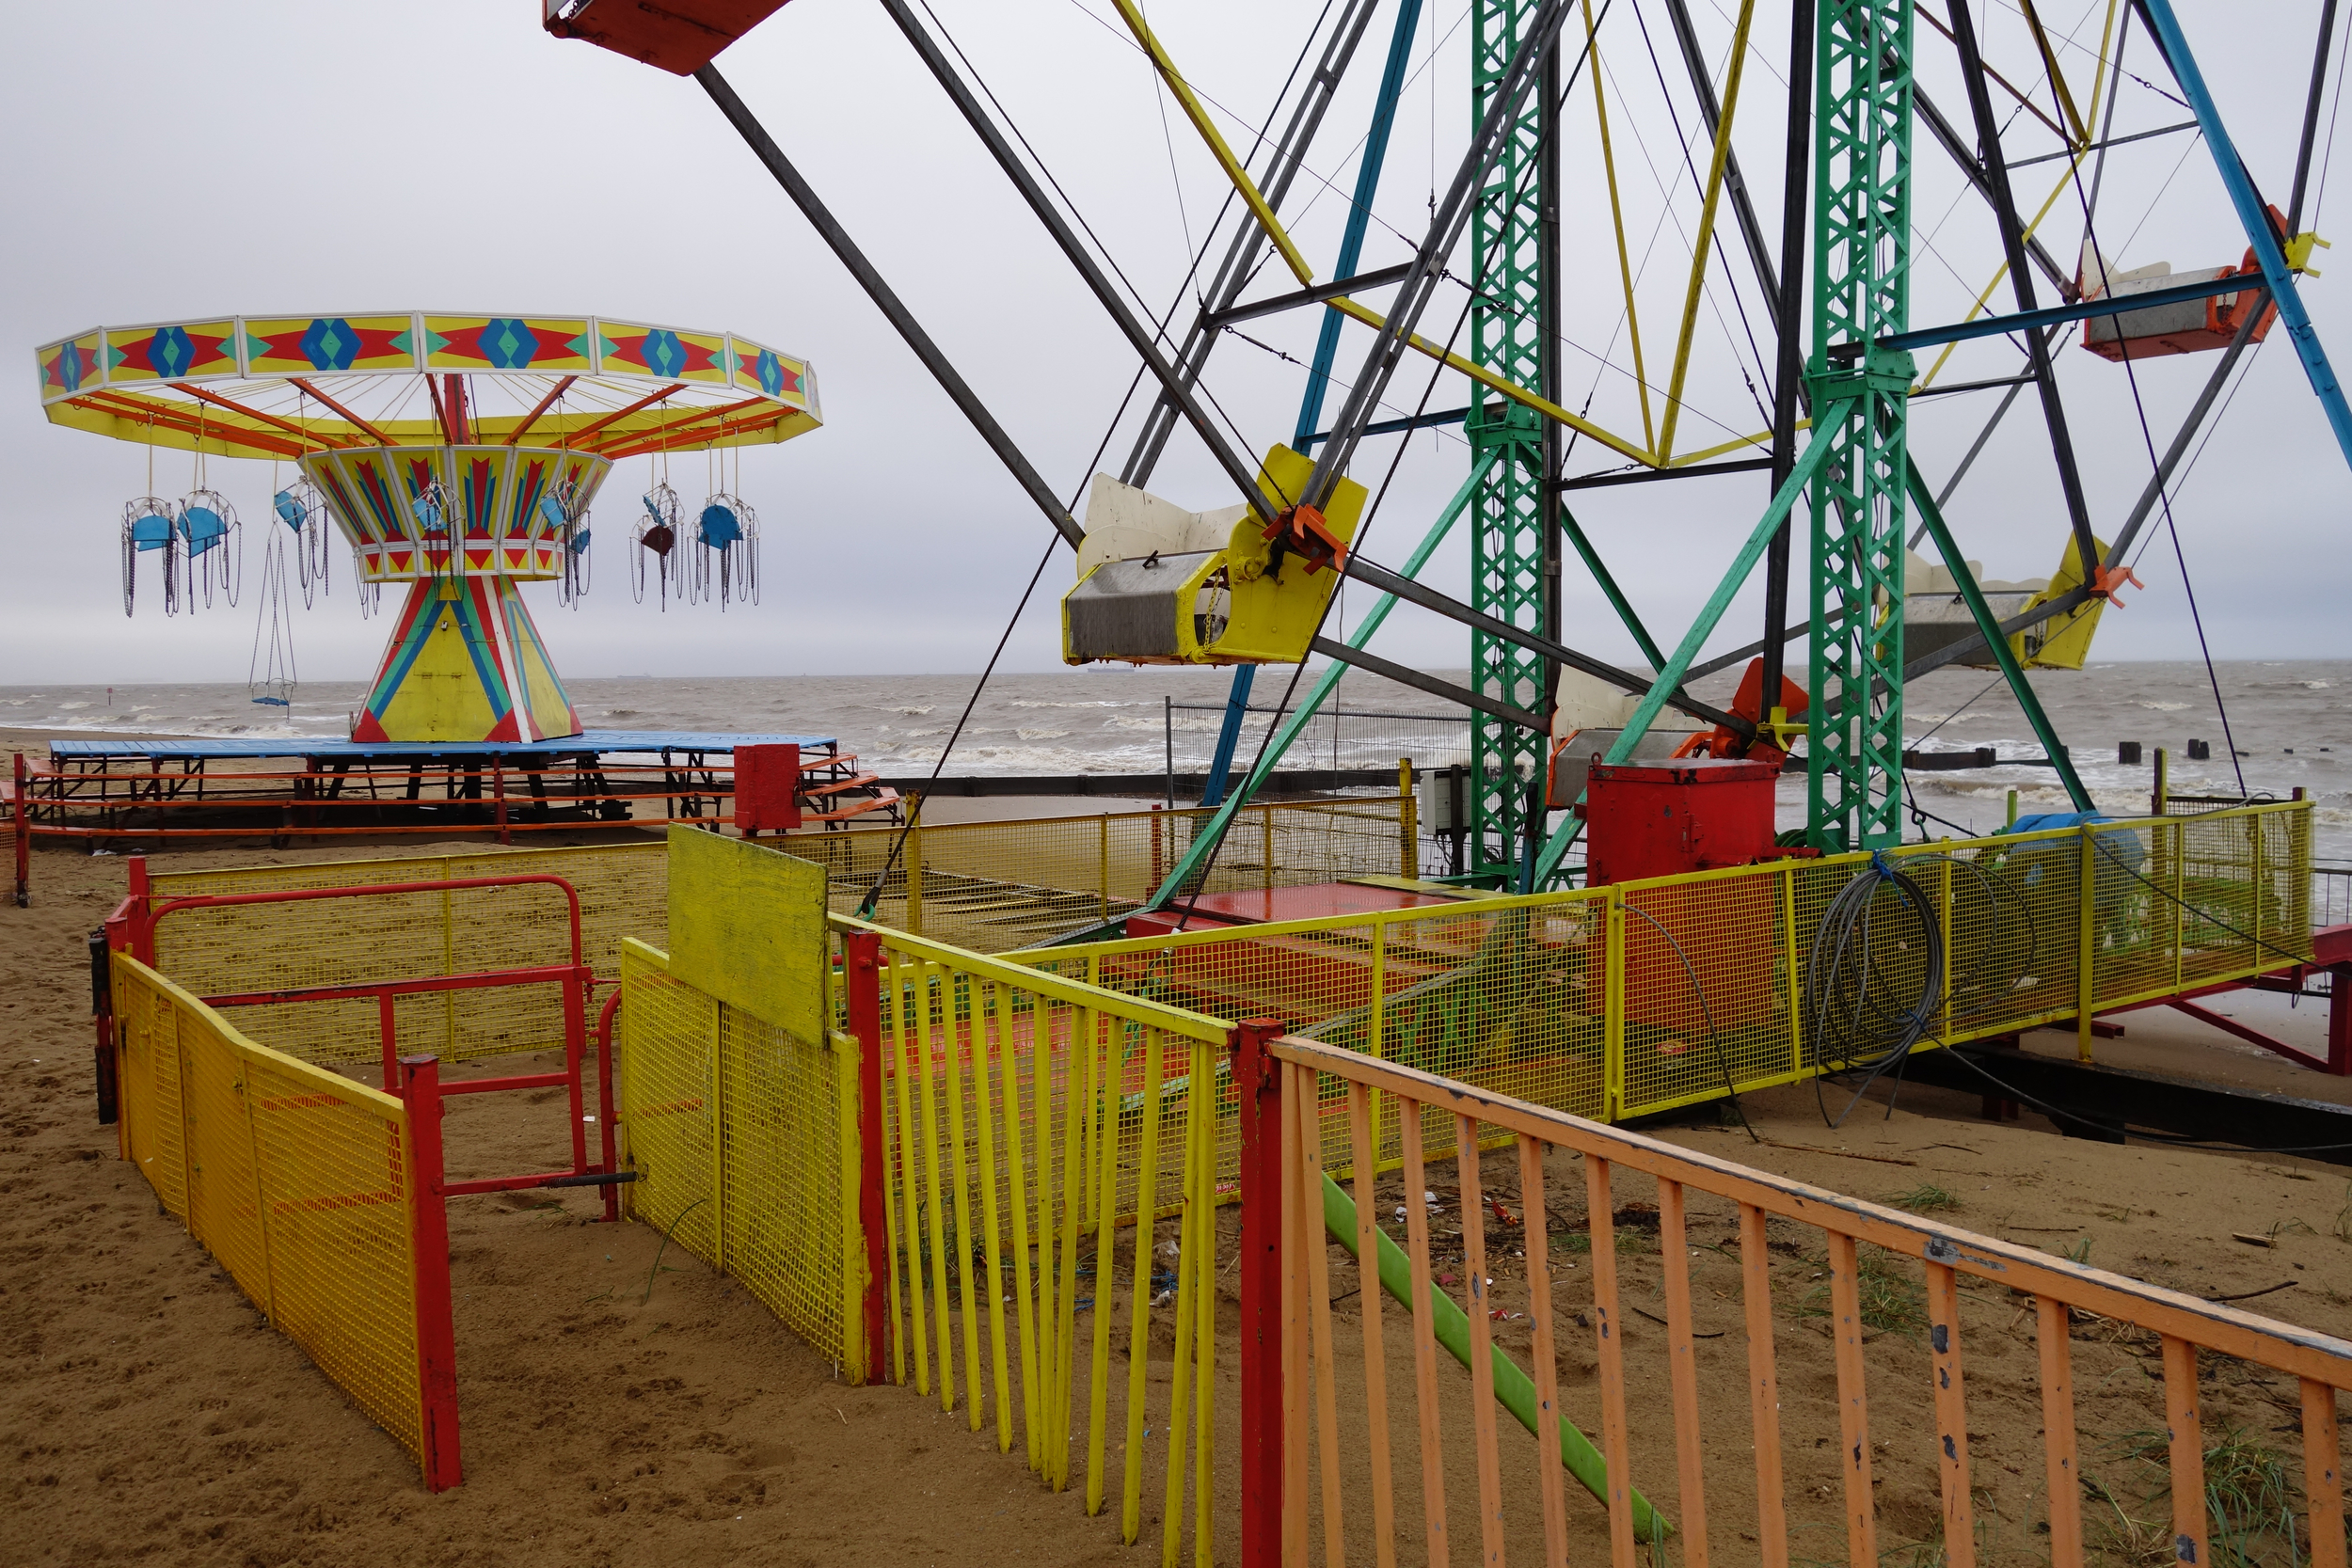 Crumbling Cleethorpes attractions.